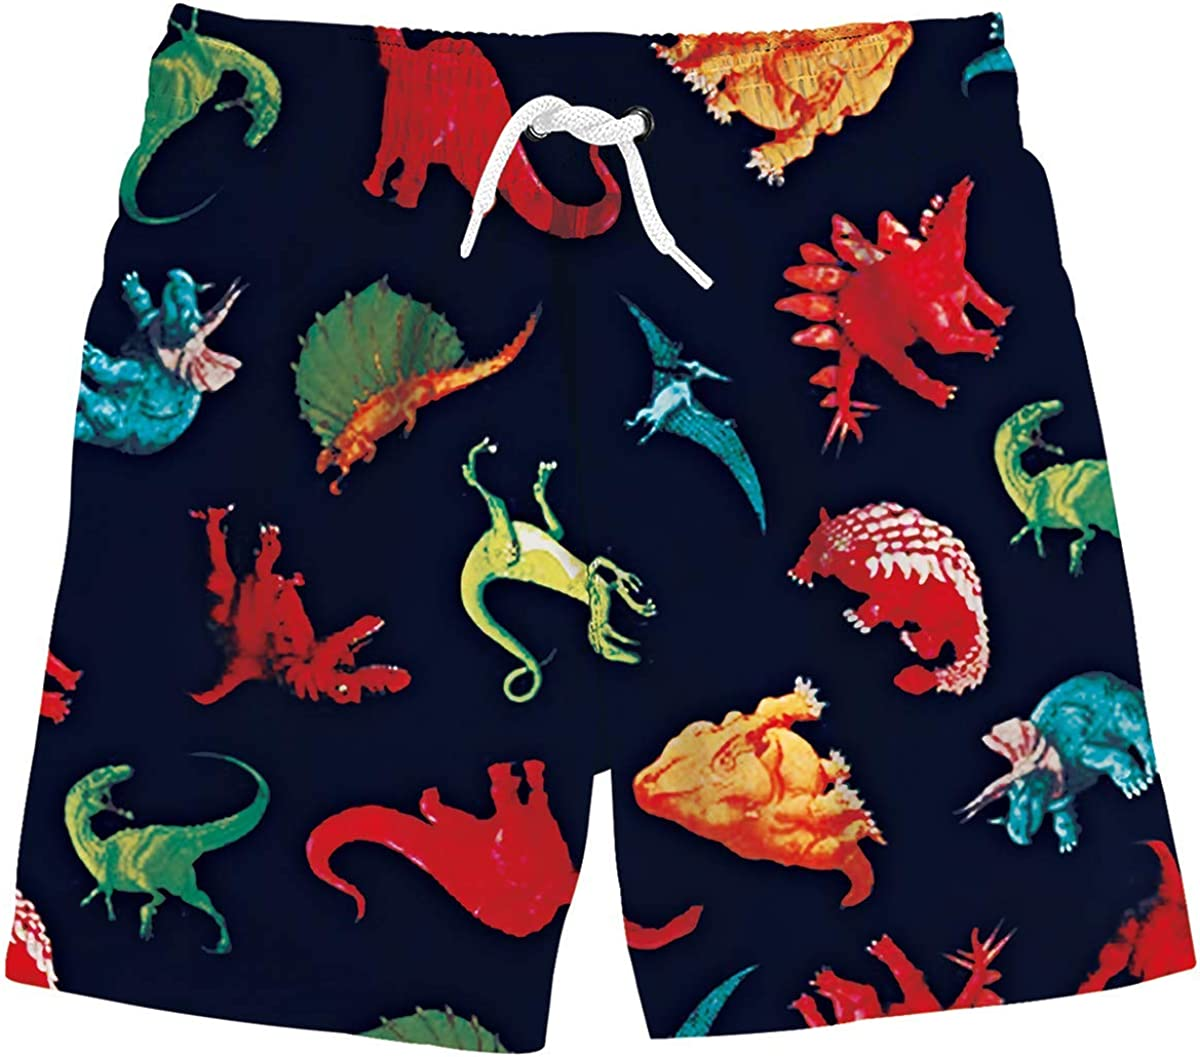 Funnycokid Boys Swim Trunks Quick Dry Kids Water Resistant Beach Board Shorts 3-12 Years